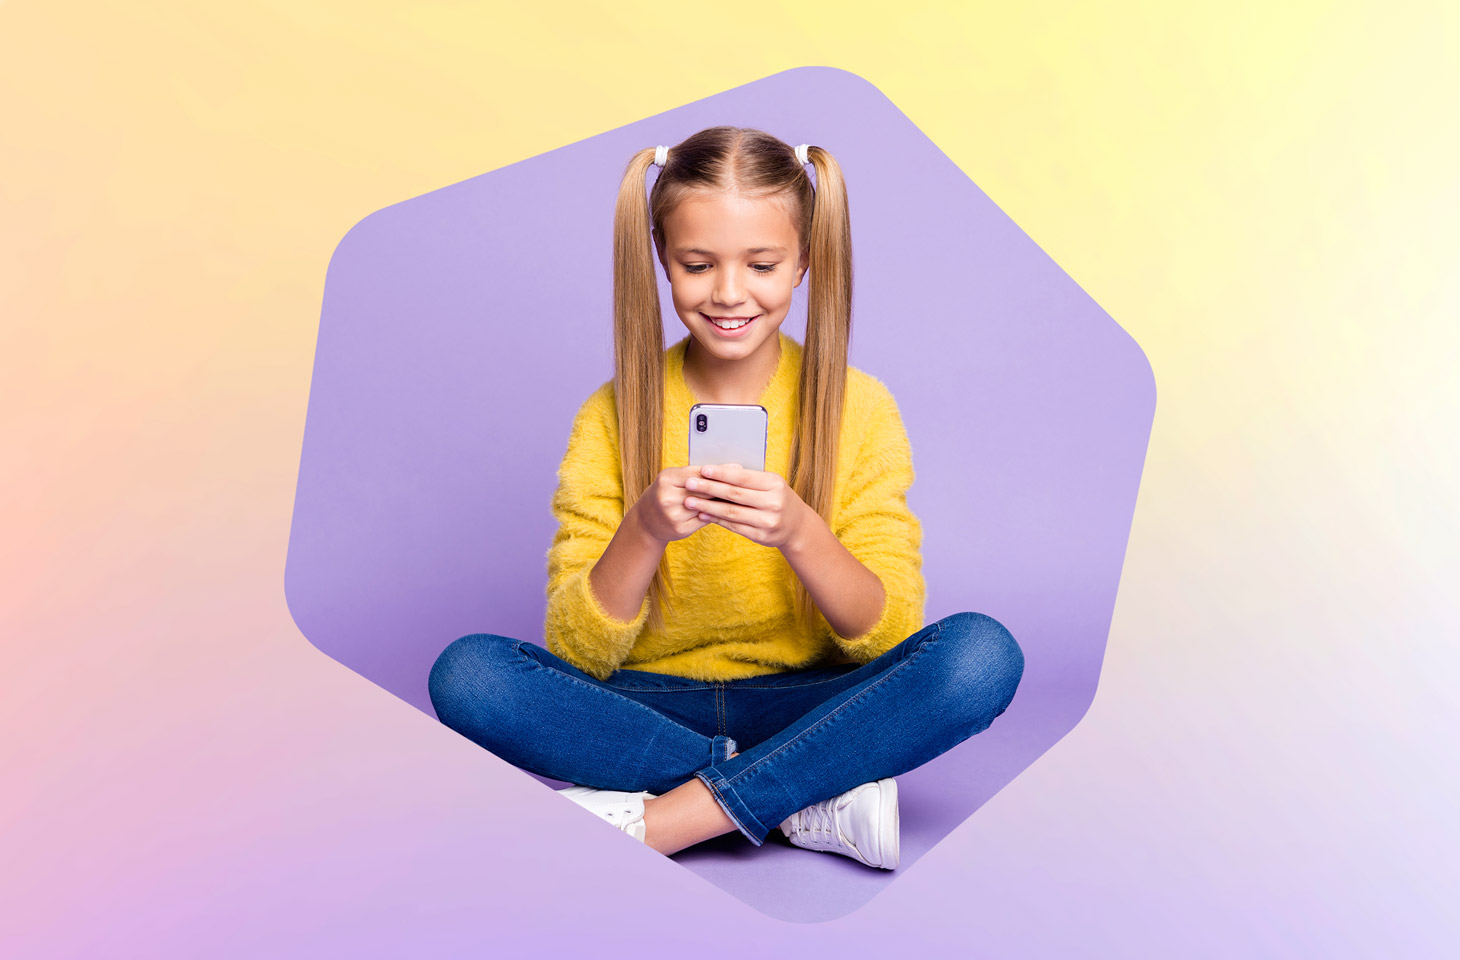 Should you buy a smartphone for your kid?